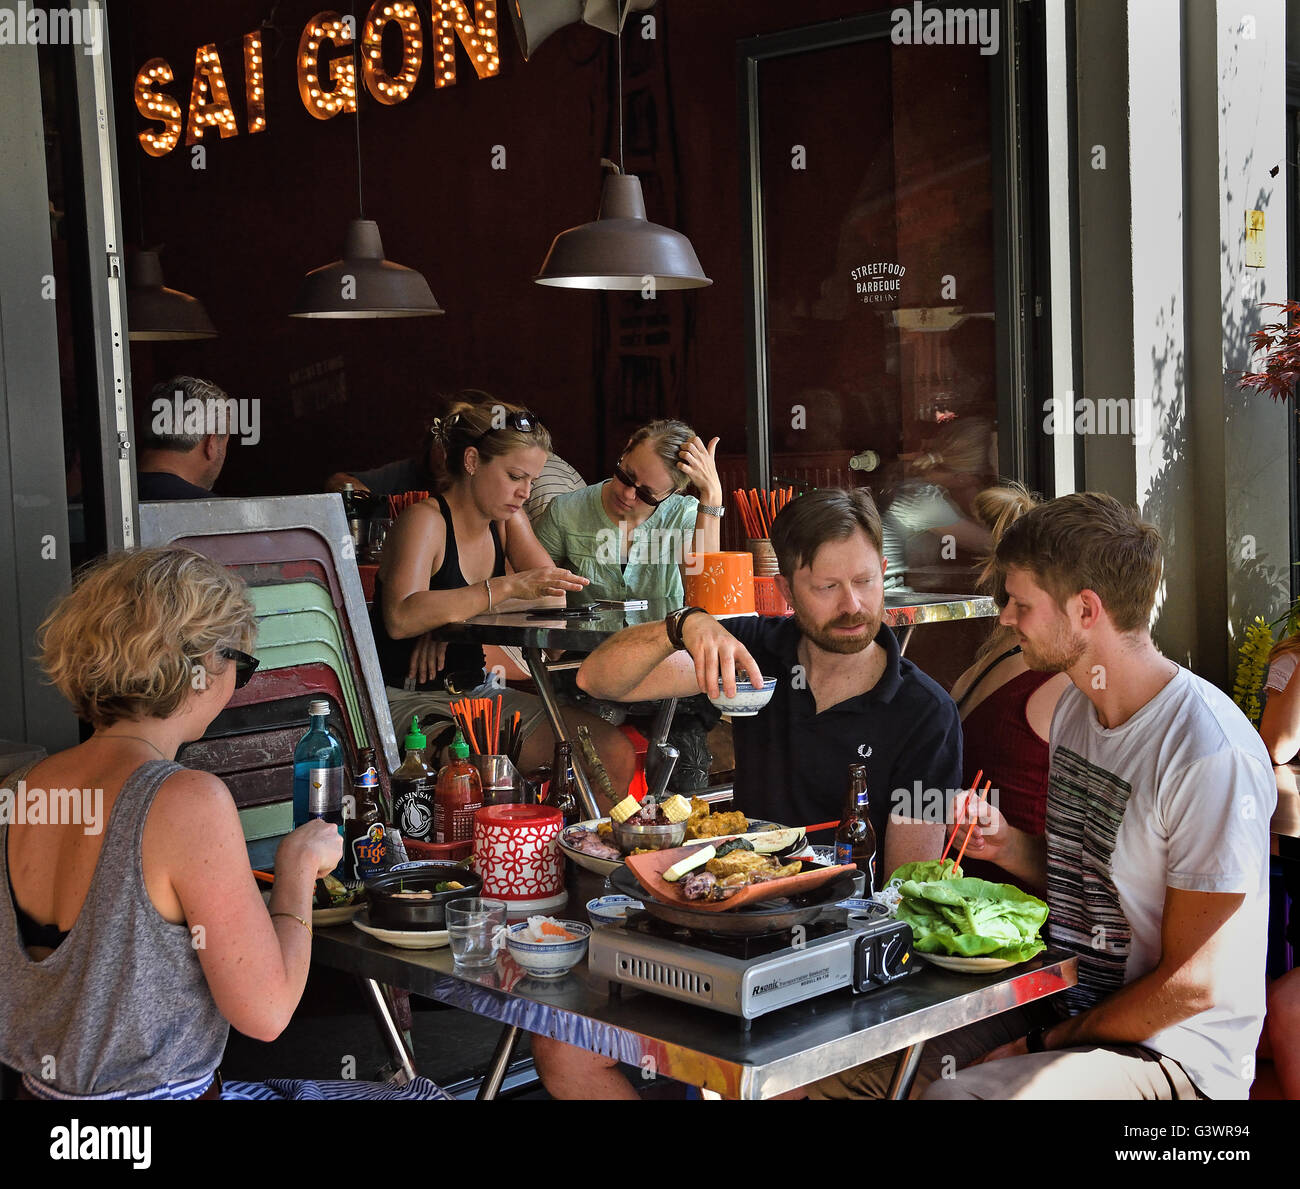 Stock Photo - District Môt - Saigon Street Food Vietnamese Restaurant Mitte, Rosenthaler Strasse Berlin Germany